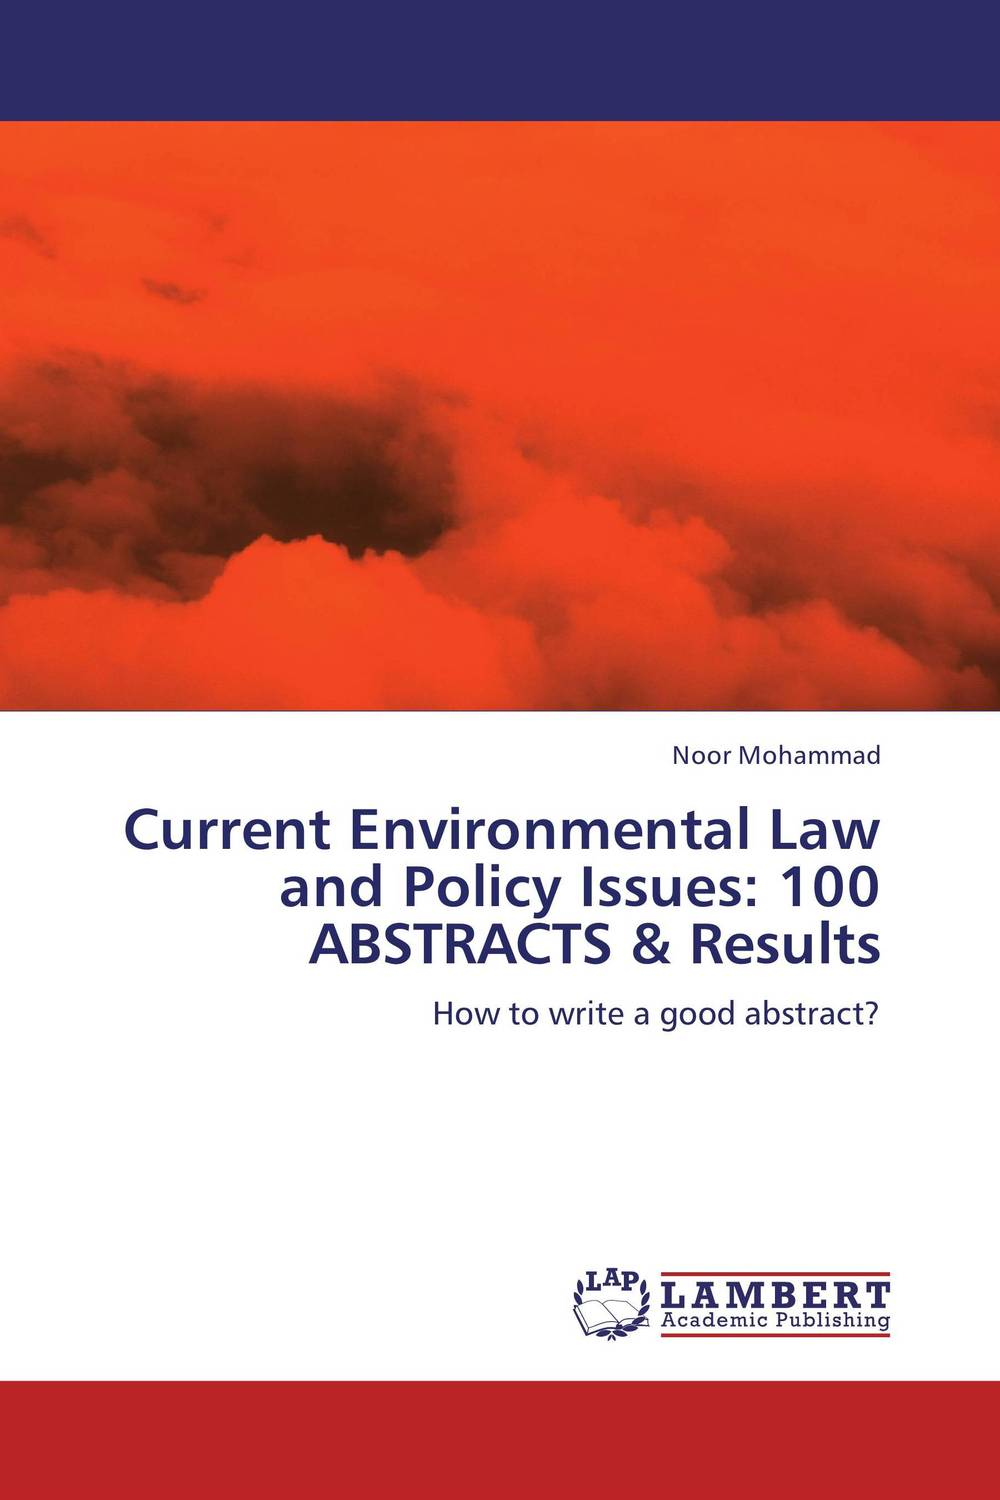 Current Environmental Law and Policy Issues: 100 ABSTRACTS & Results daniel bodansky the art and craft of international environmental law